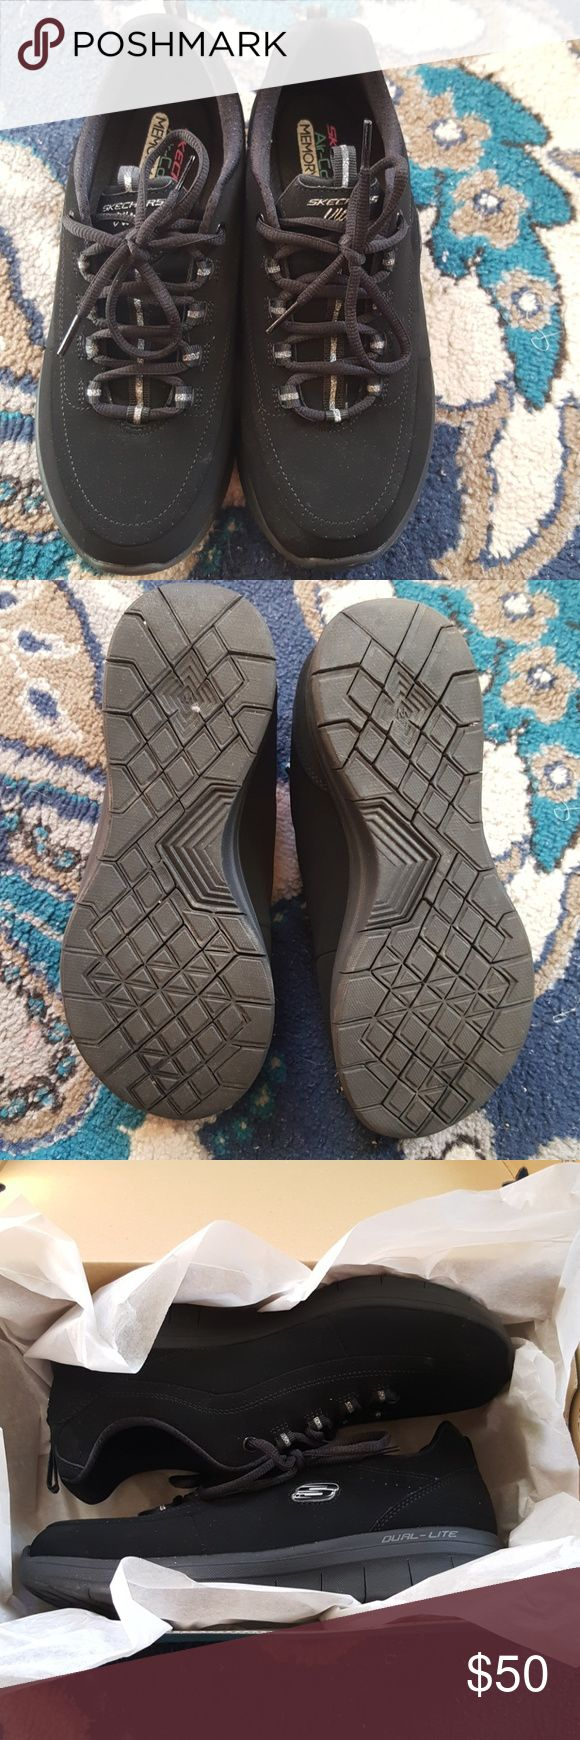 Black Sketchers sneakers Worn only once to break in. Size 8. Has air cooled memory foam. NWOT Skechers Shoes Sneakers